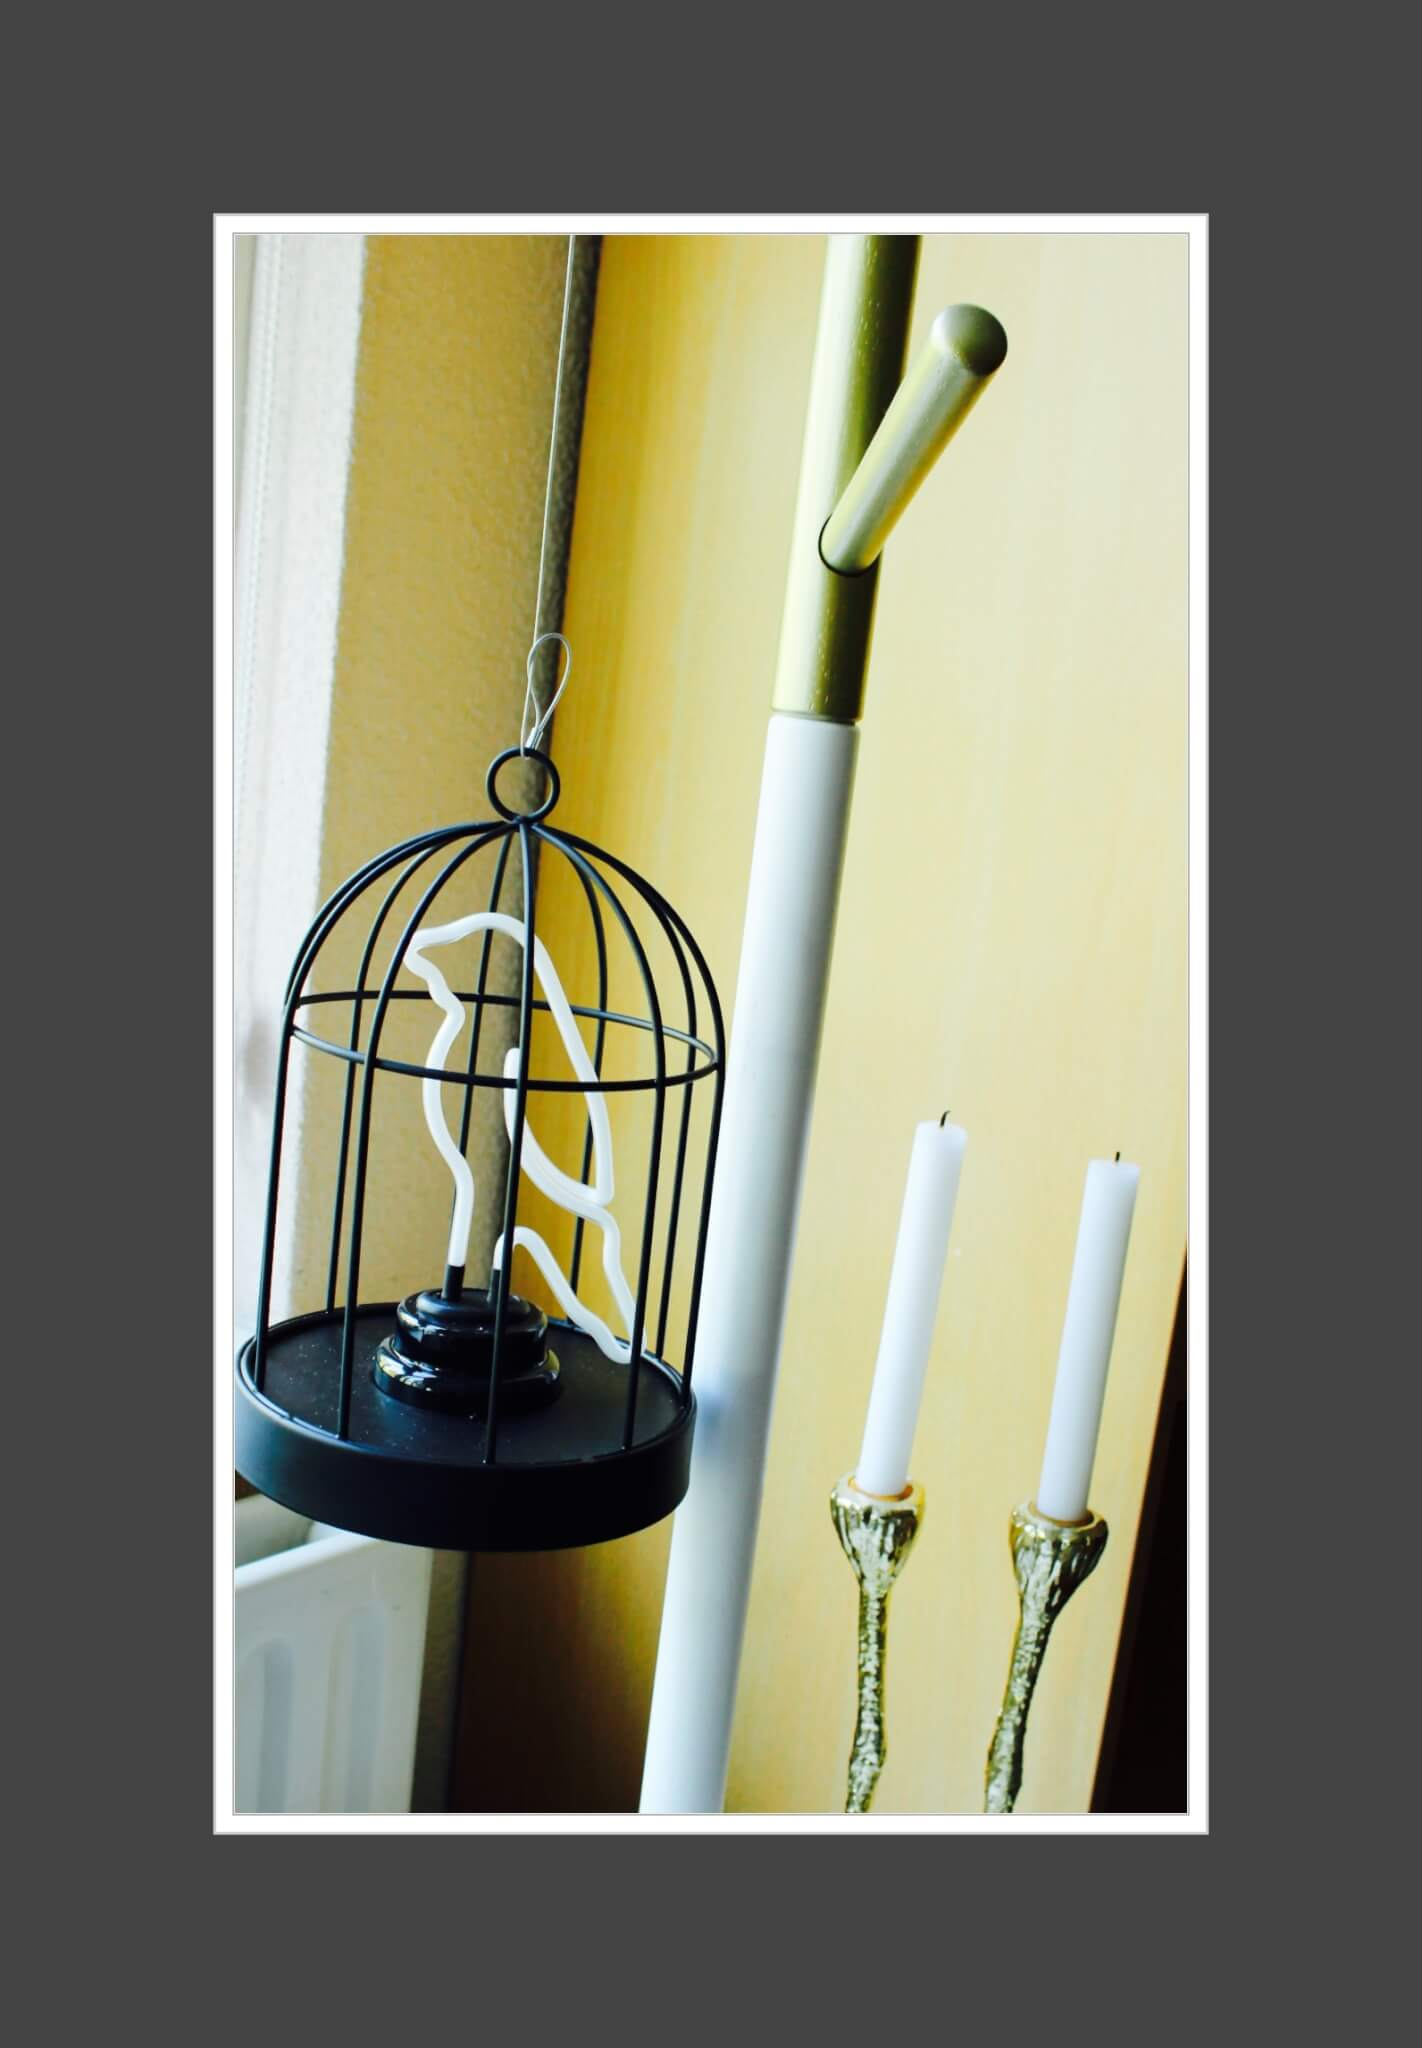 Neon Buis Verlichting Bird Cage Lamp Is It A Bird Is It A Plane No It Is A Bird Cage